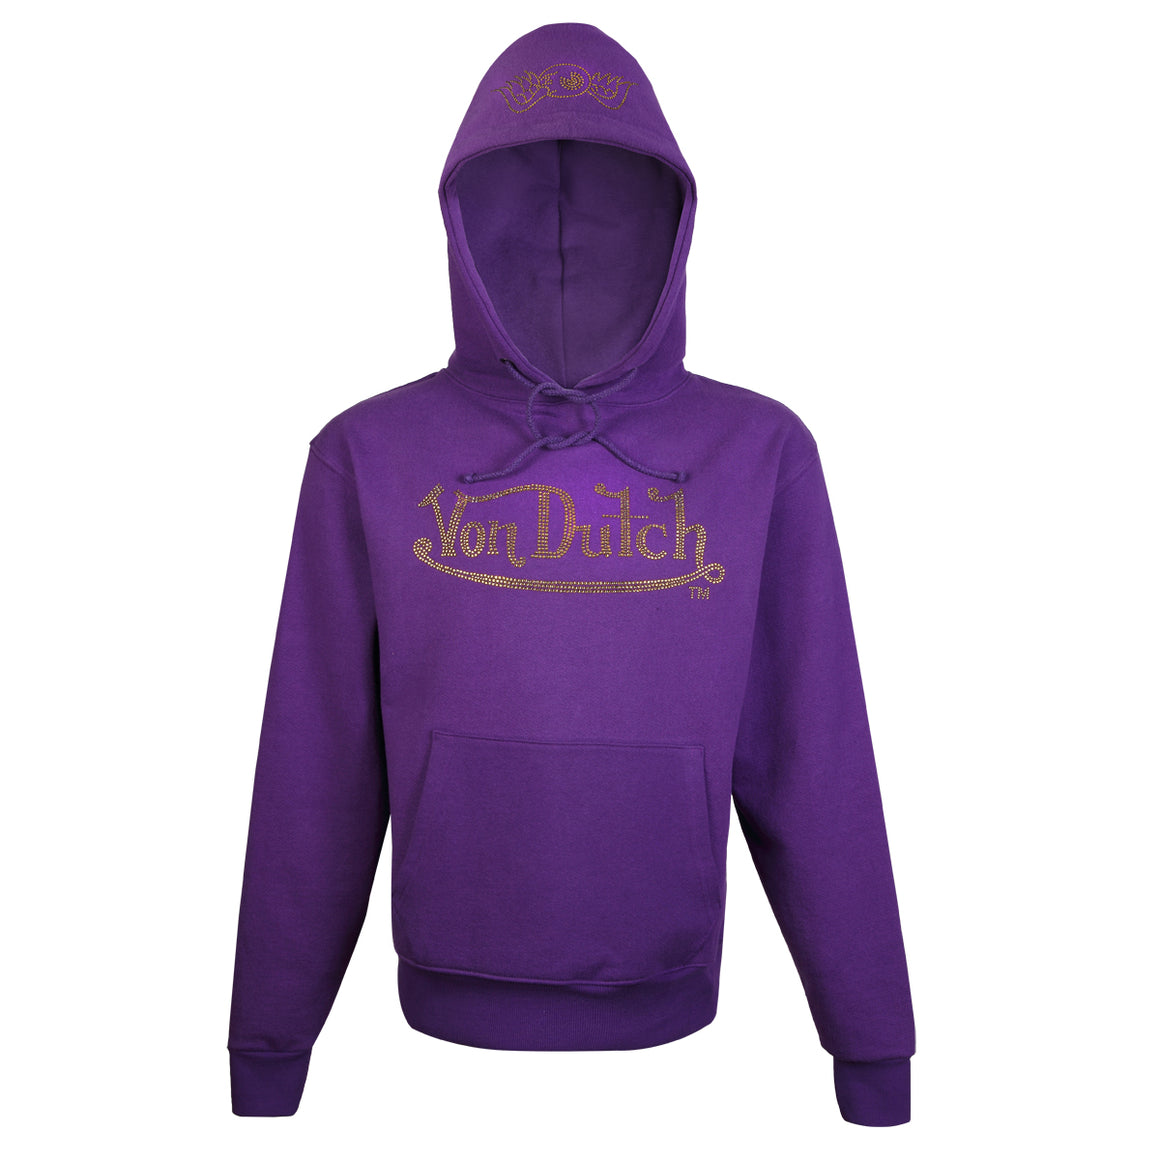 Hoodie Purple with Gold Rhinestones